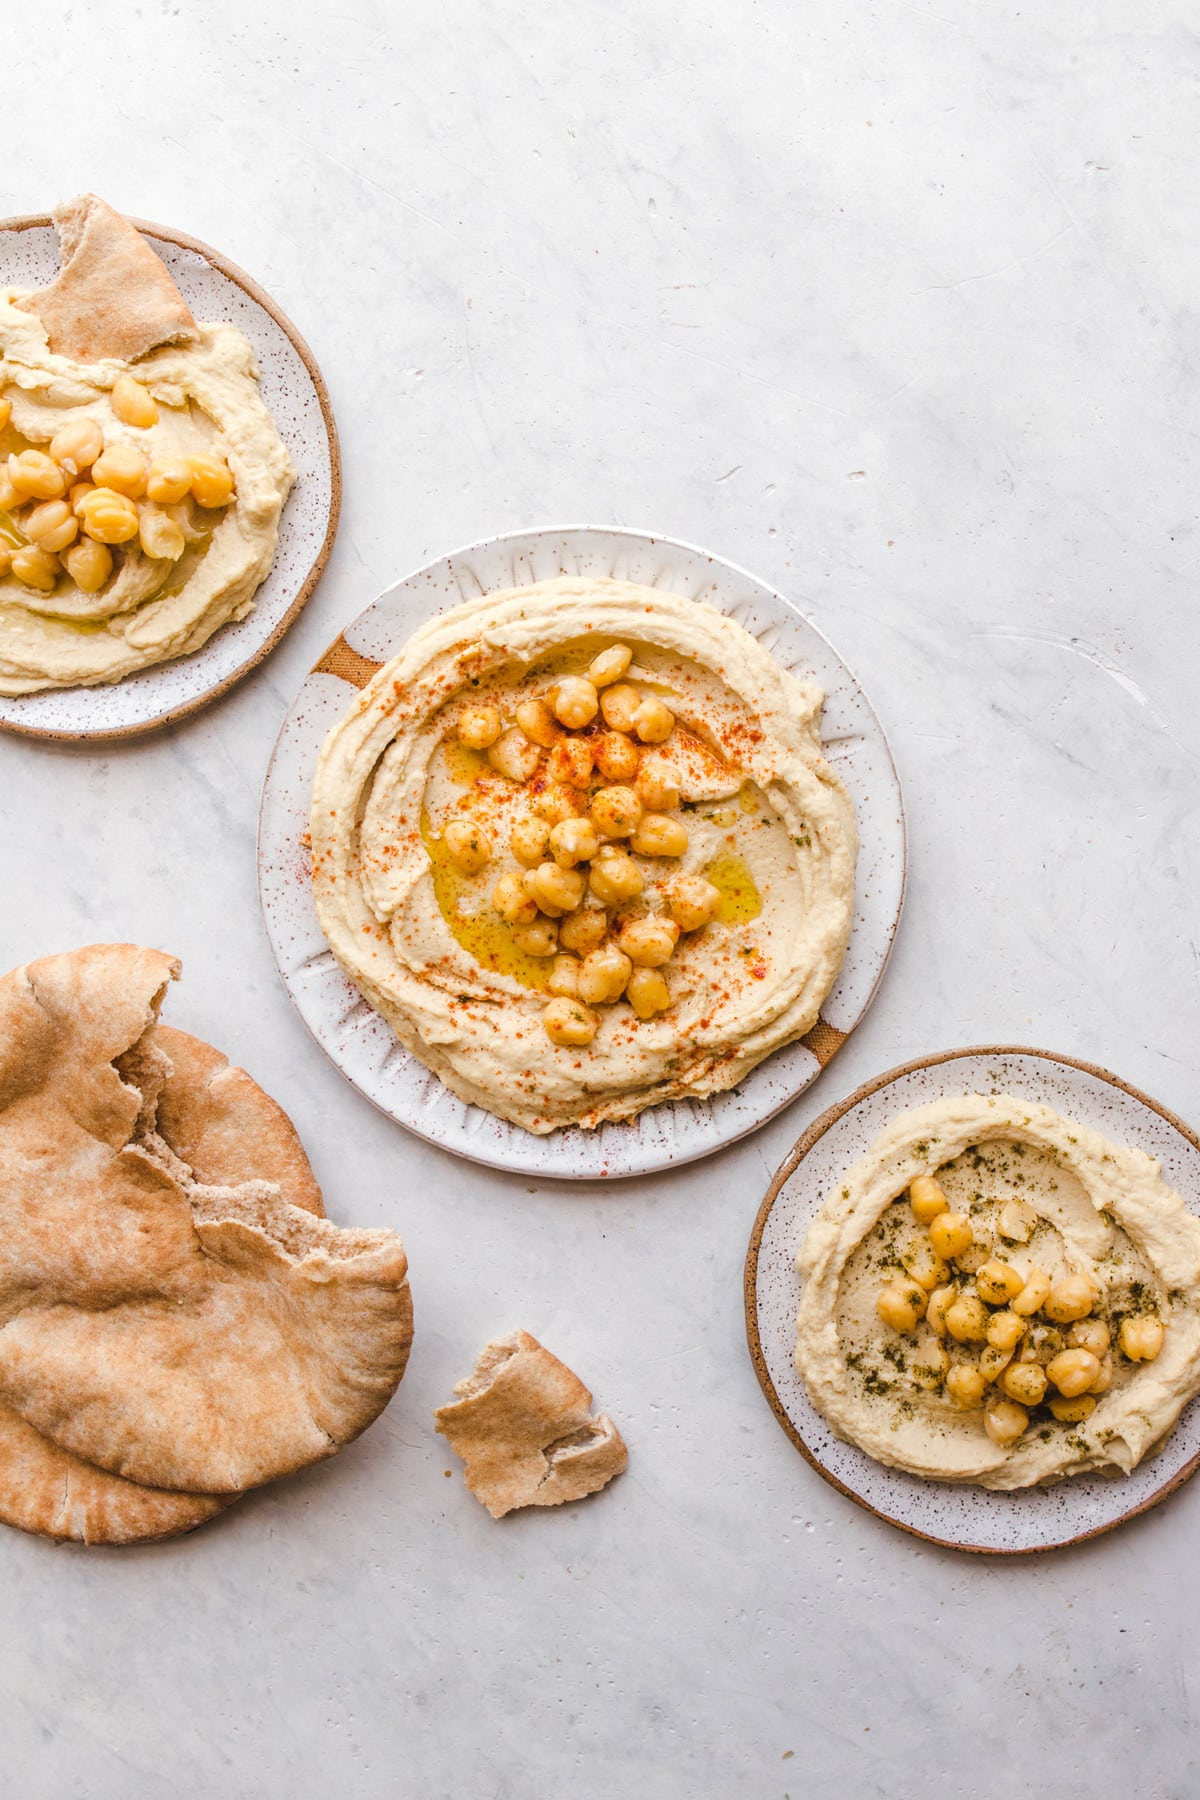 How to Make (The Best) Hummus